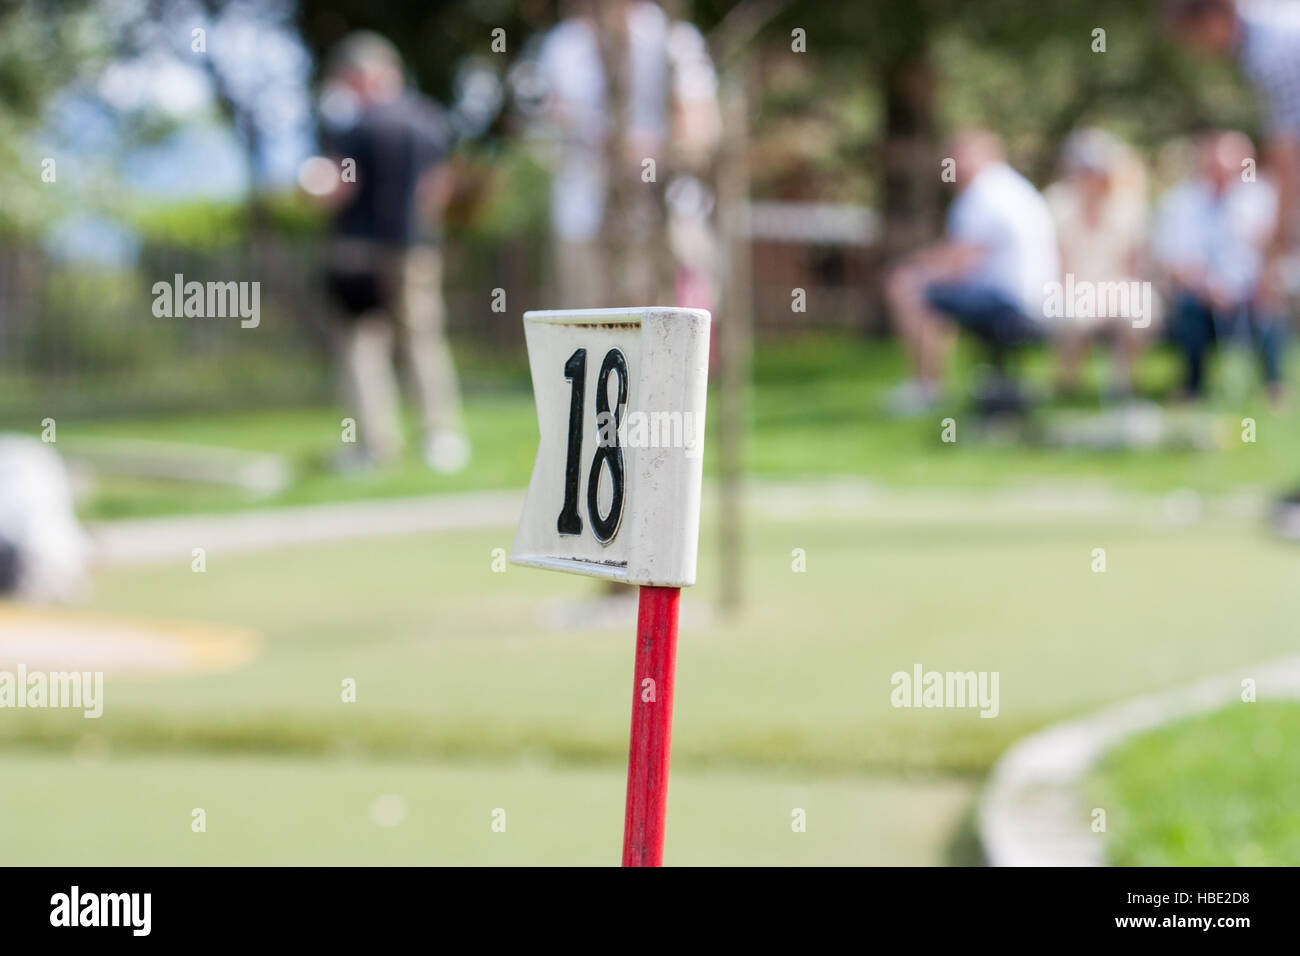 On 18th hole - All Grown Up - Stock Image